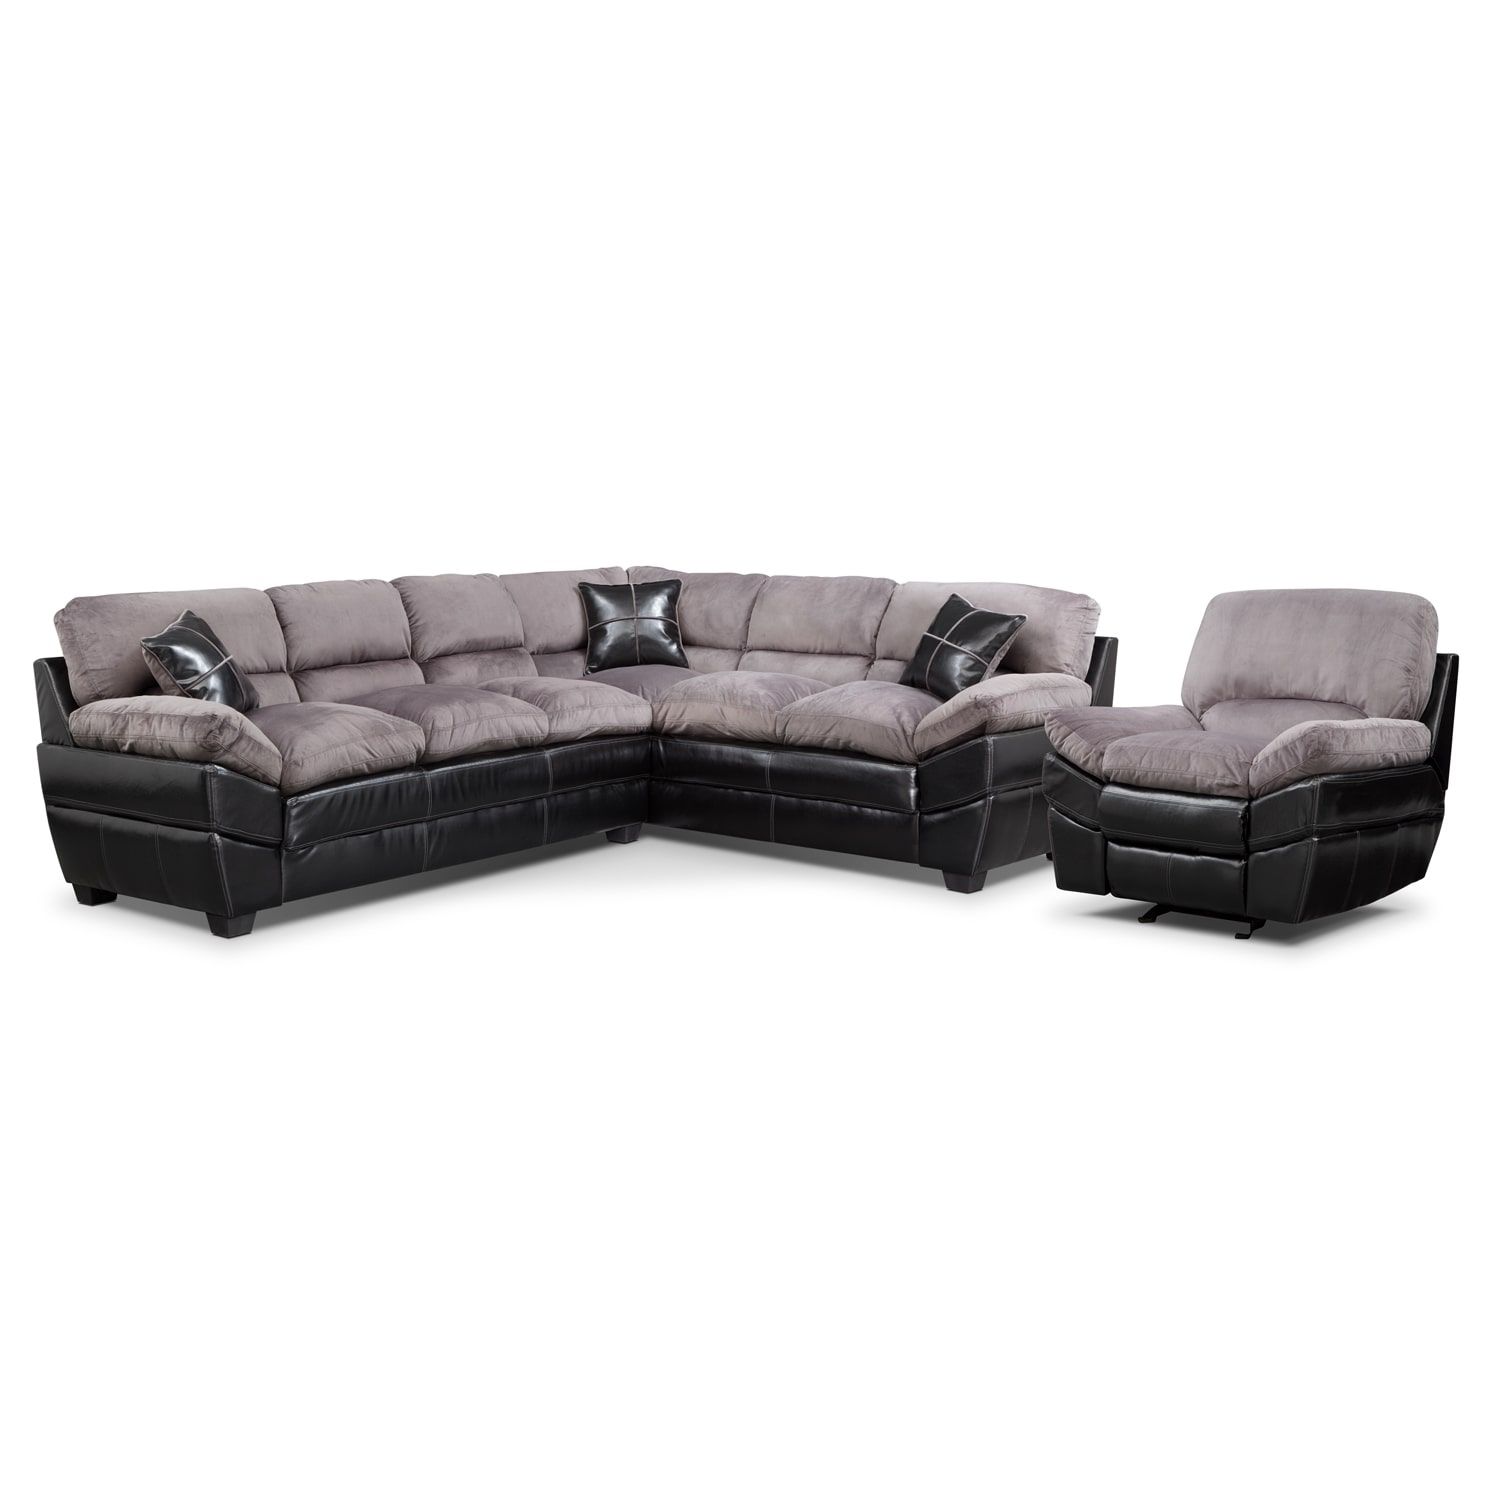 Living Room Furniture - Chandler Gray II 2 Pc. Sectional and Glider Recliner